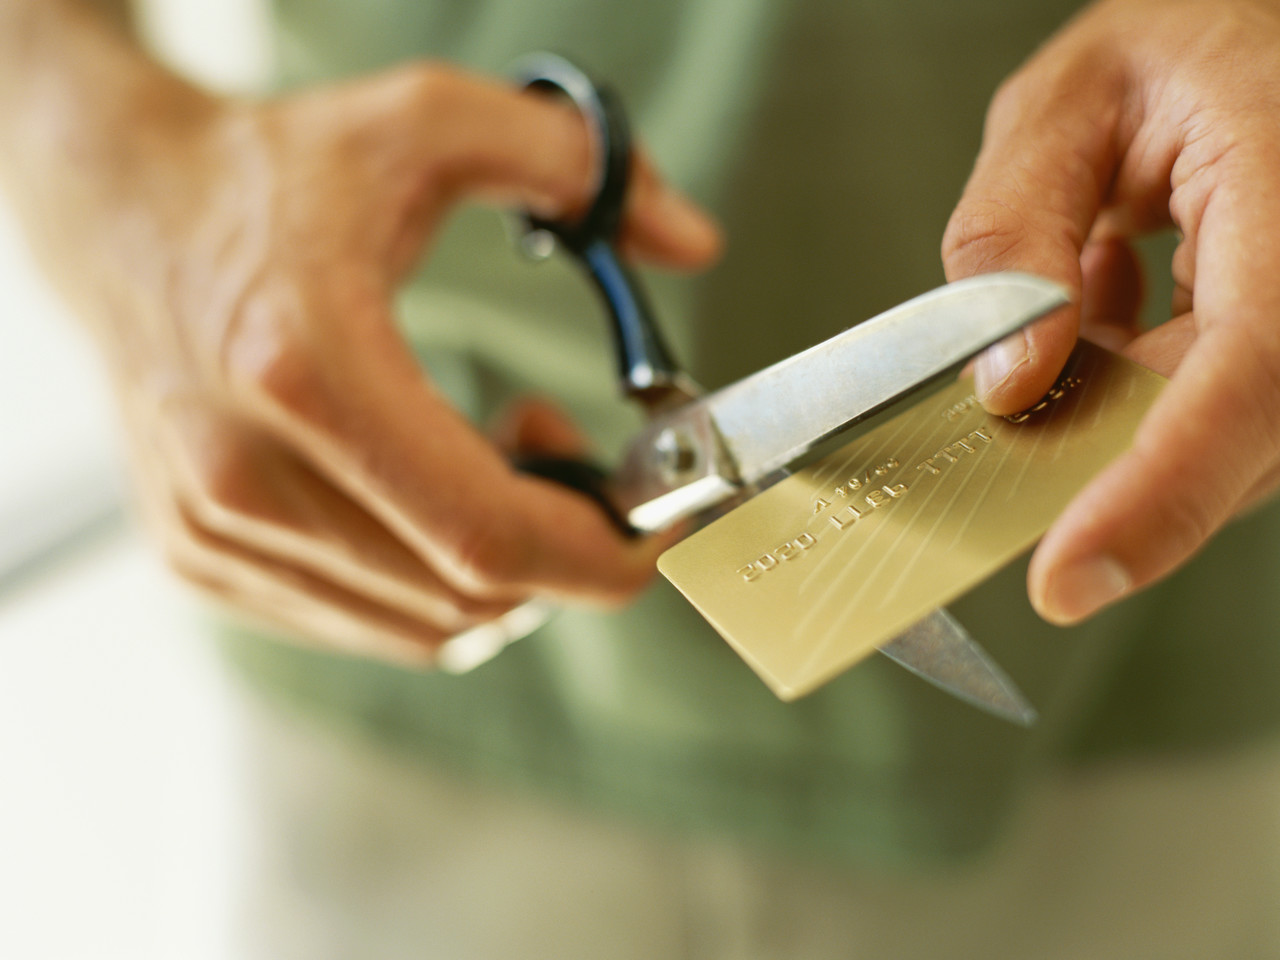 cut up credit cards to get rid of debt